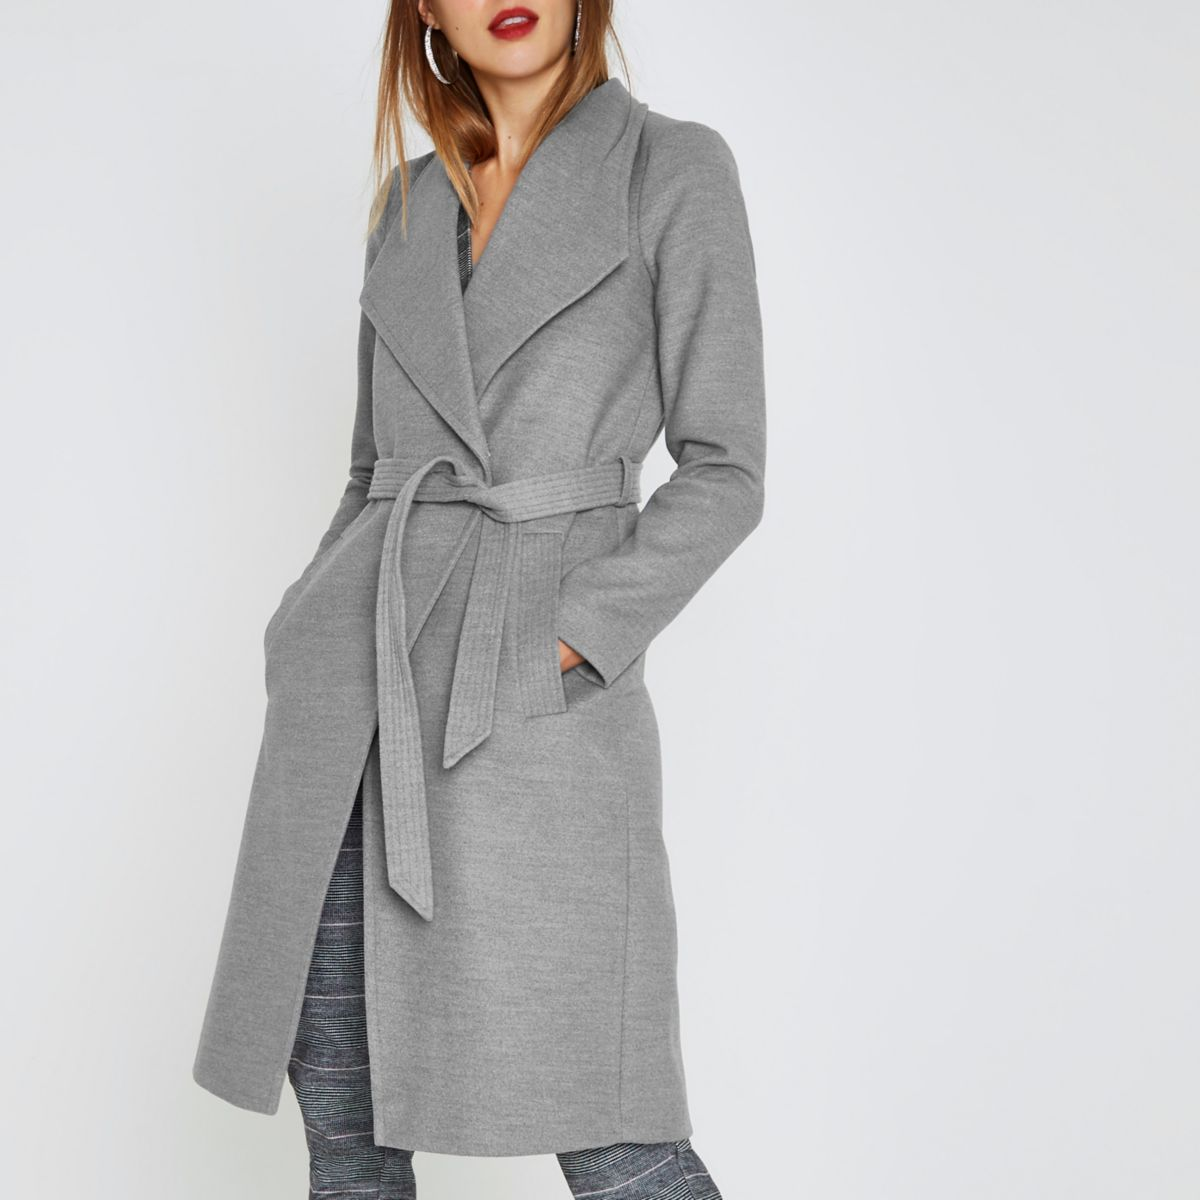 River Island Uk Womens Coats